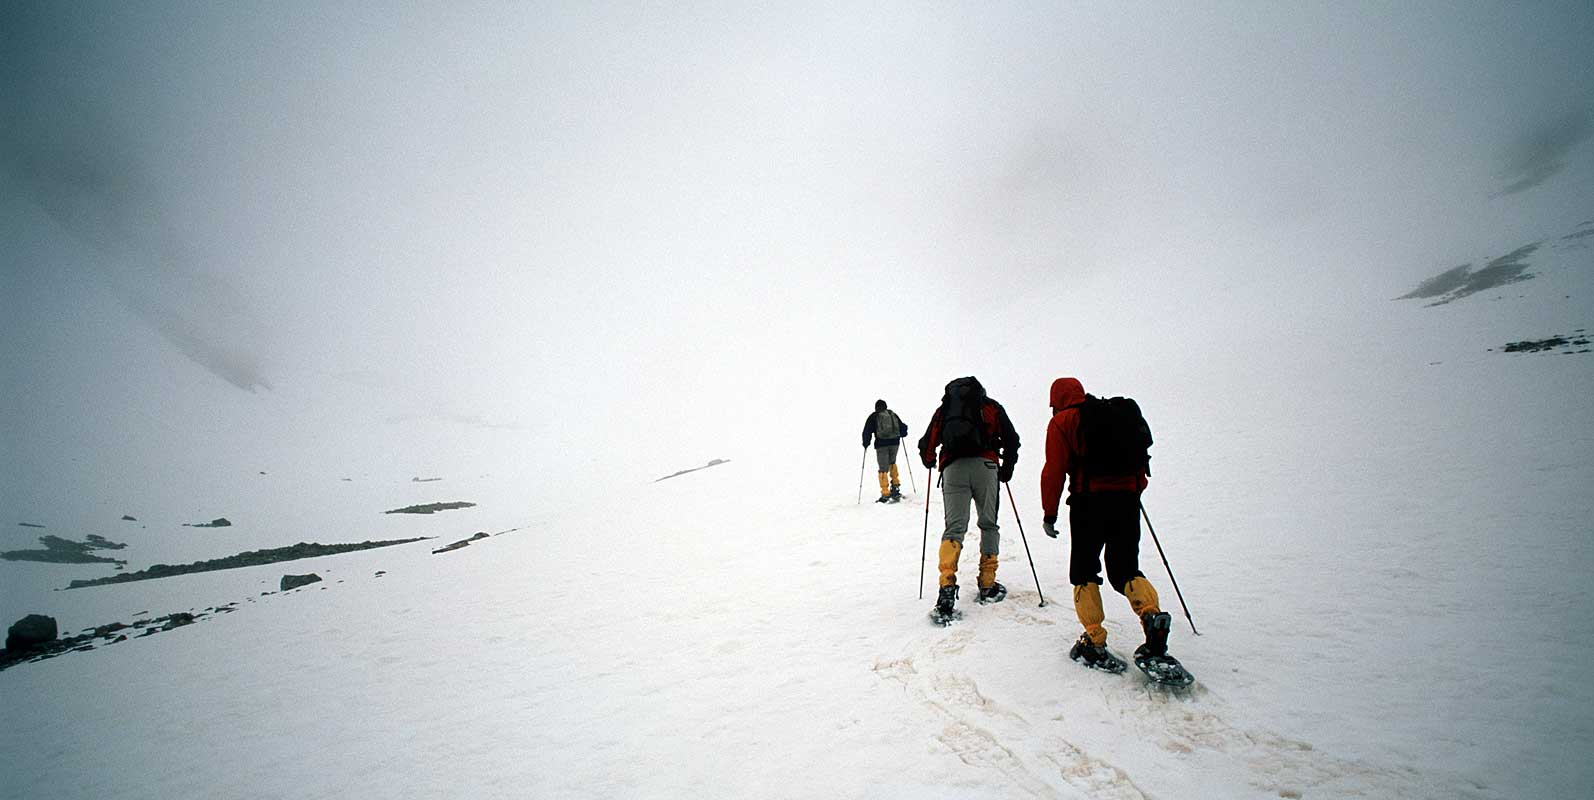 Heading up to the col and into a white-out